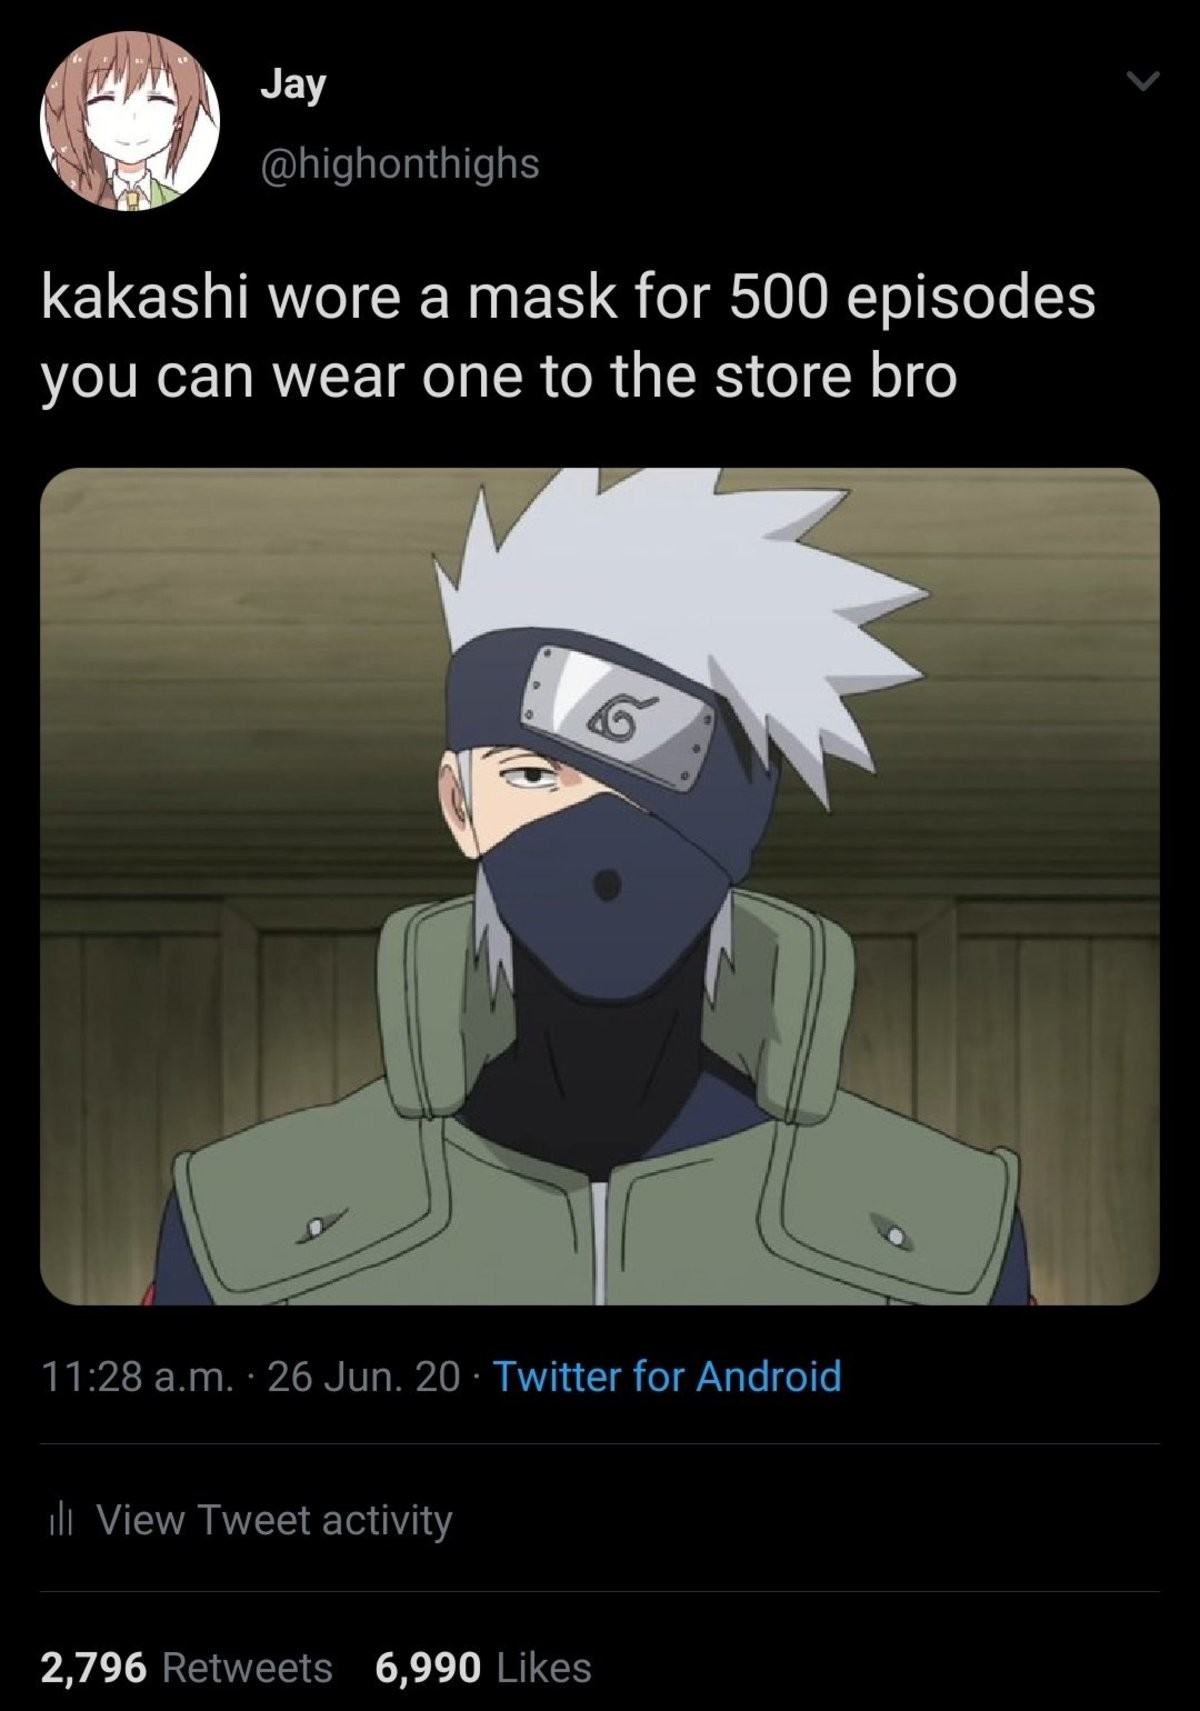 maaskashi. .. If I can spend an entire day with a 15cm buttplug up my ass you all can wear a mask for 1 hour.